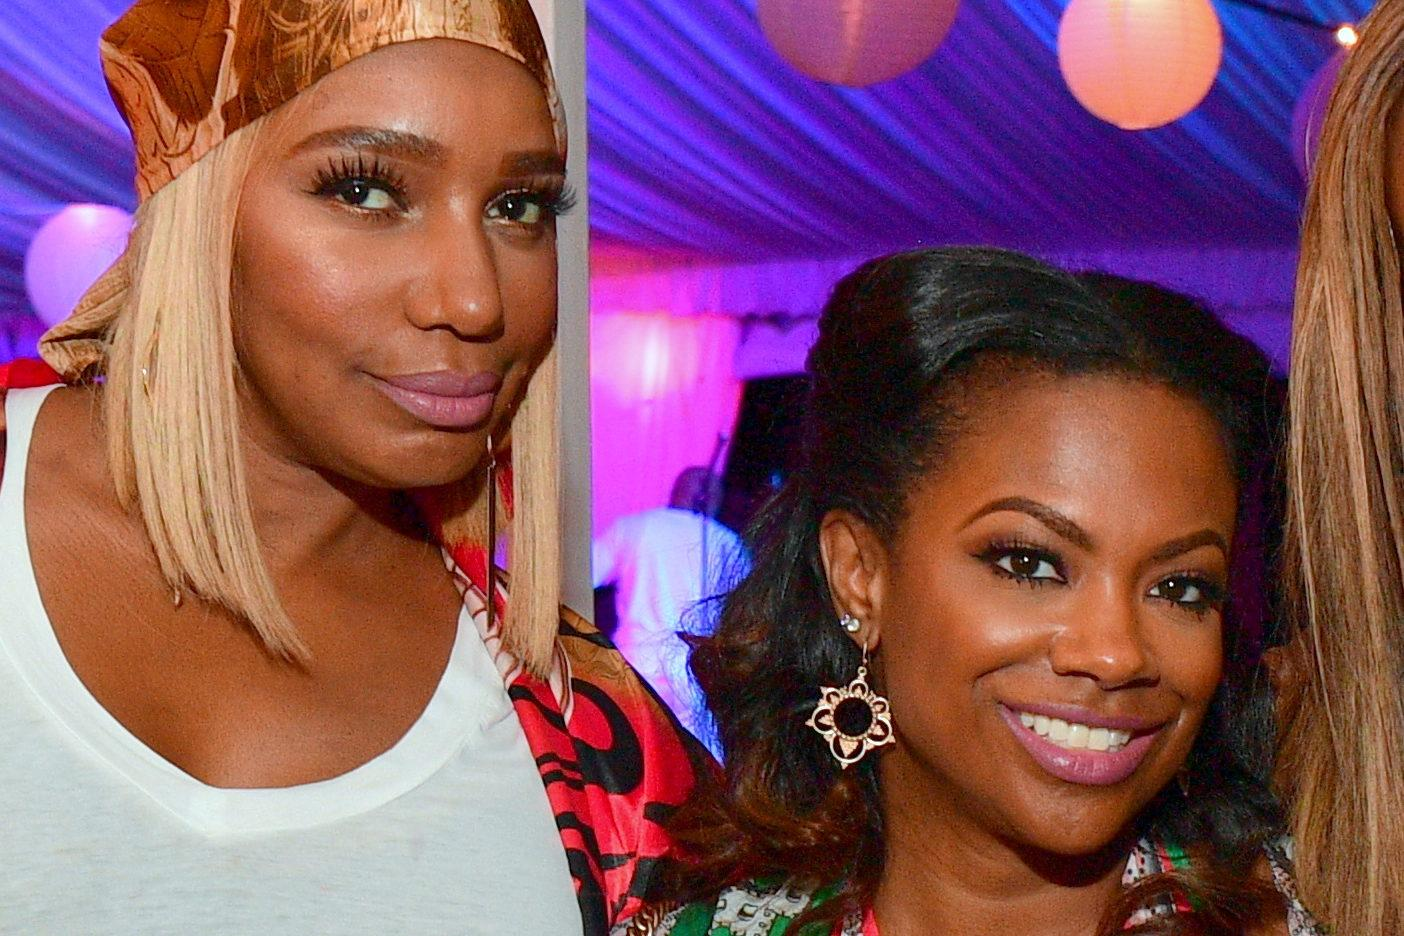 Kandi Burruss Makes Fans Laugh Their Hearts Out With This Parody Video Featuring Herself And NeNe Leakes - See It Here